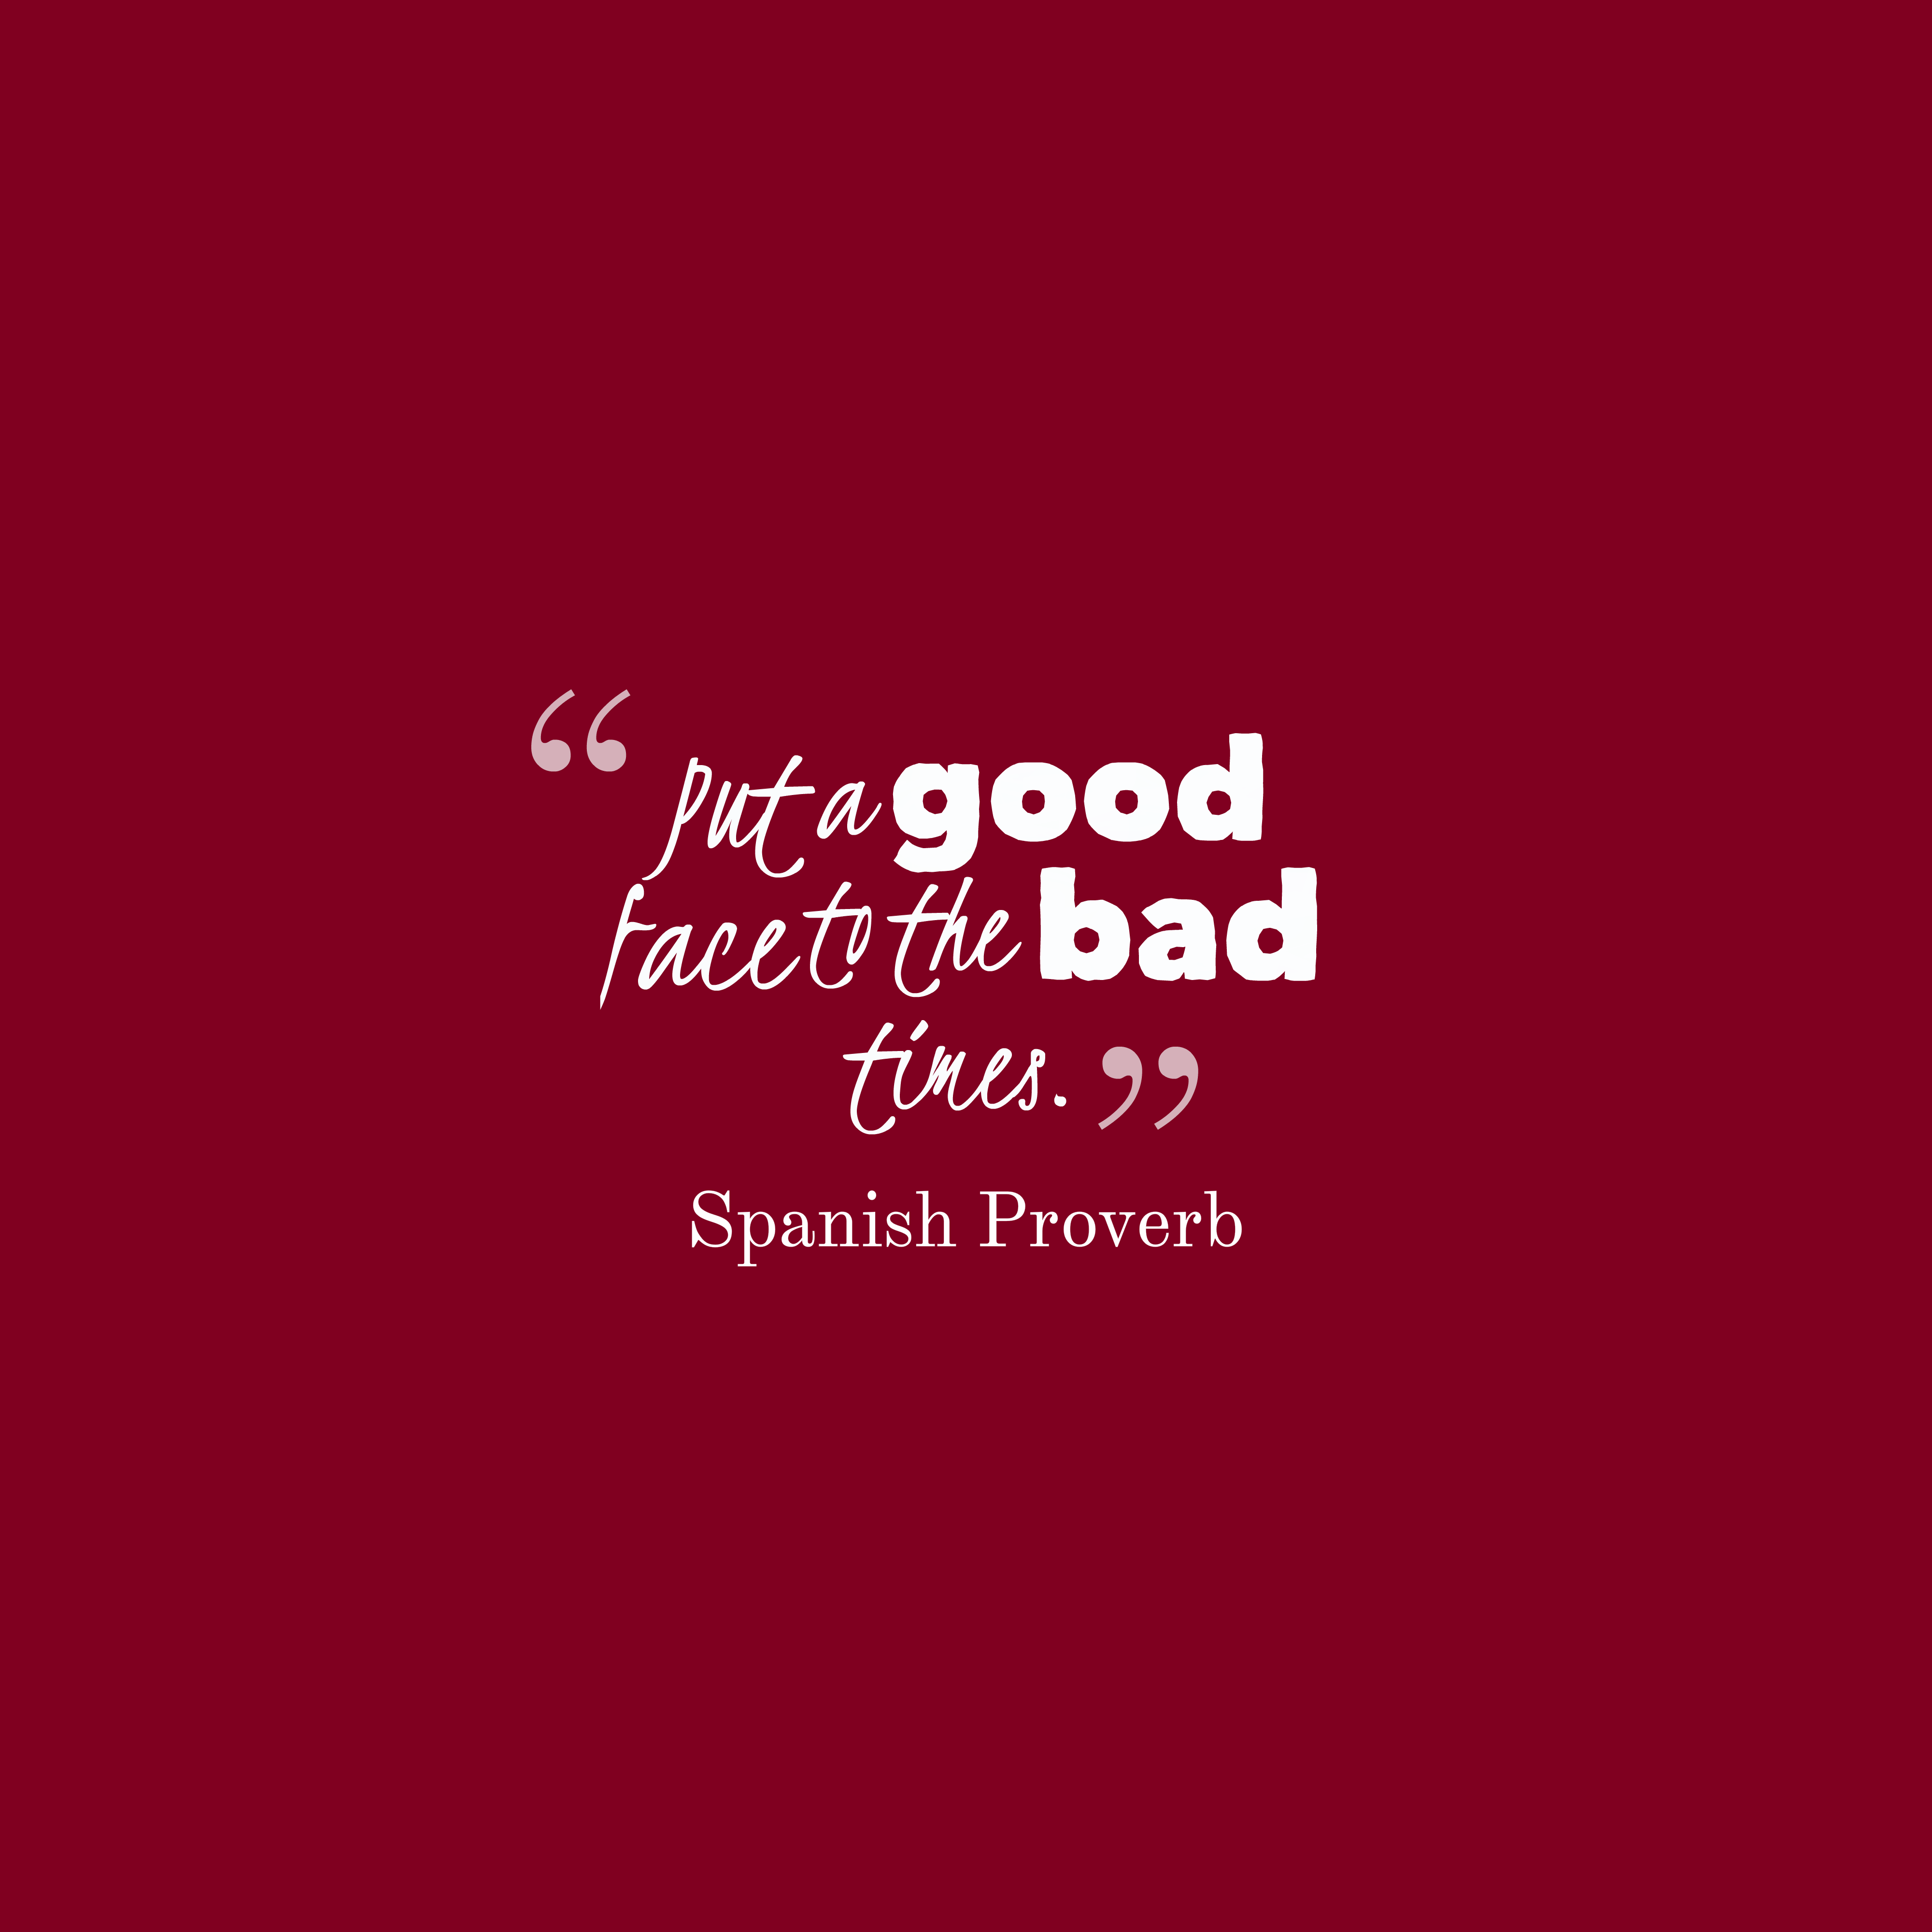 Quotes image of Put a good face to the bad times.